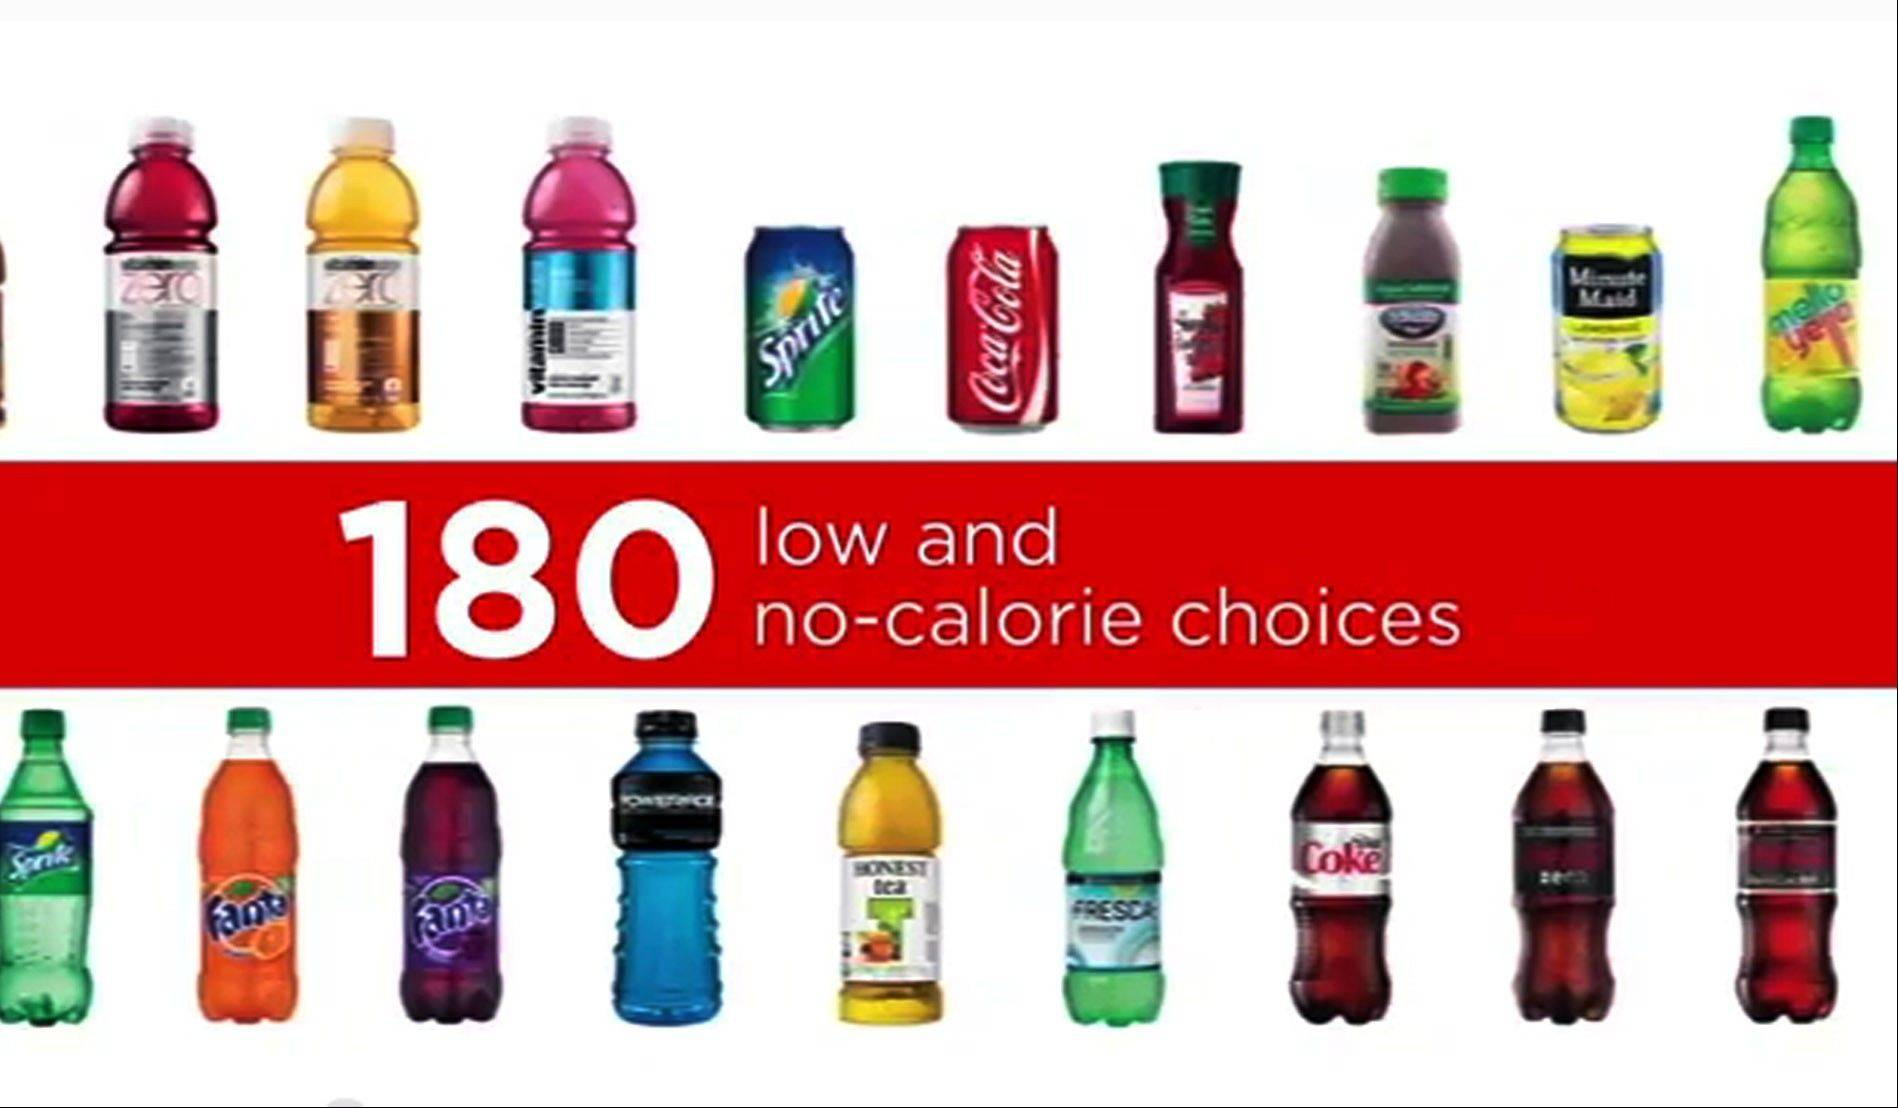 Coca-Cola on Monday said it will start airing a two-minute spot during the highest-rated shows on CNN, Fox News and MSNBC in hopes of flexing its marketing muscle in the debate over sodas and their impact on public health. The ad lays out Coca-Cola's record of providing drinks with fewer calories over the years and notes that weight gain is the result of consuming too many calories of any kind, not just soda.